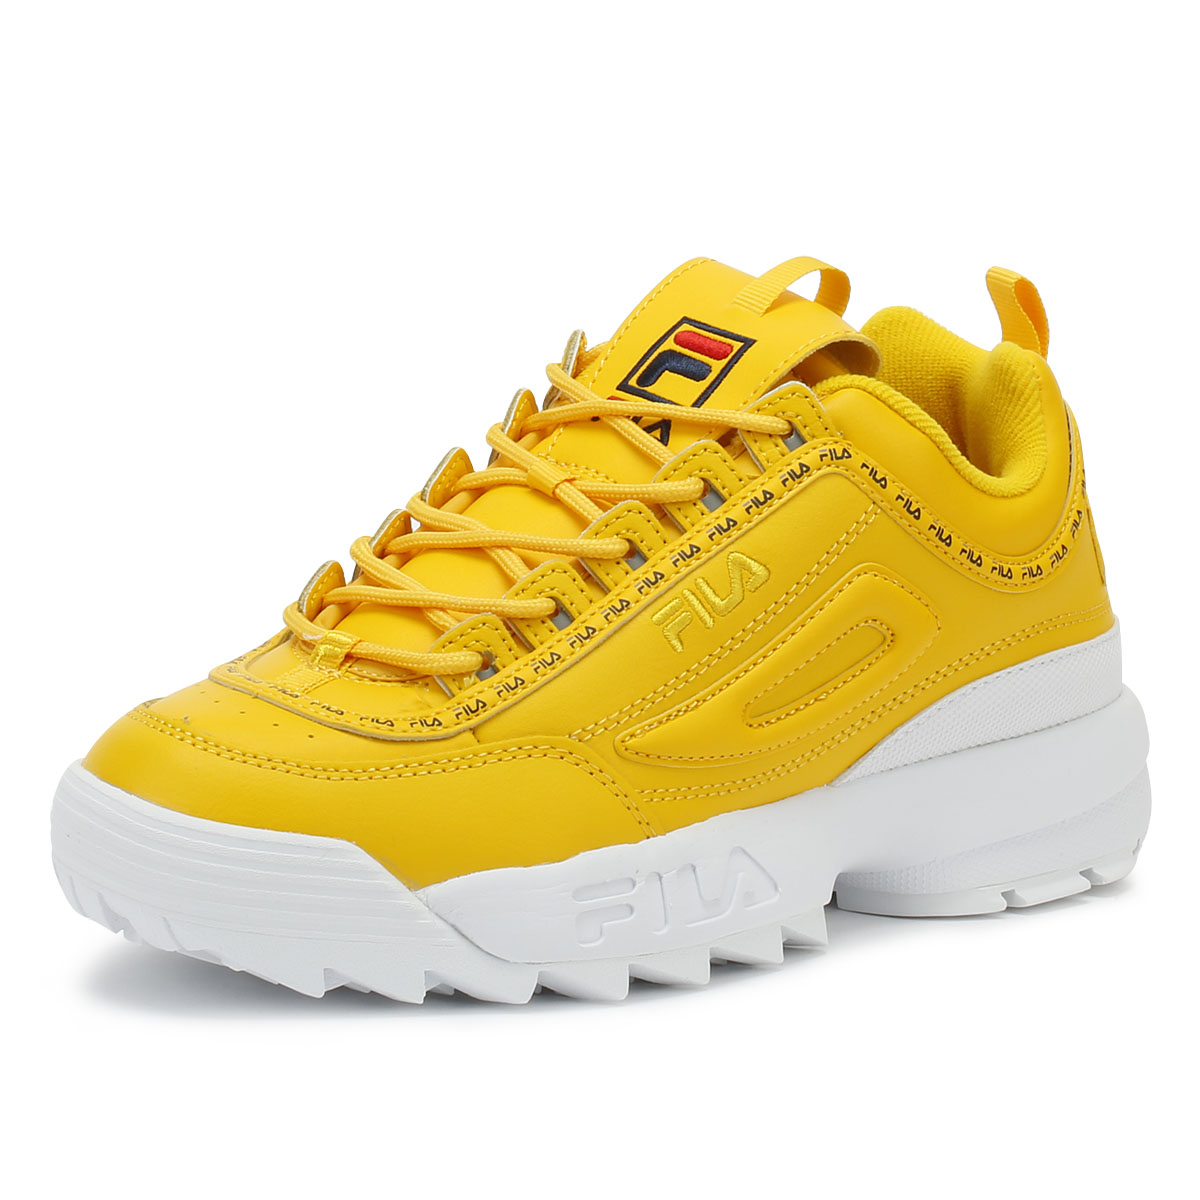 d893baba Details about Fila Disruptor II Premium Repeat Womens Citrus Yellow  Trainers Casual Shoes